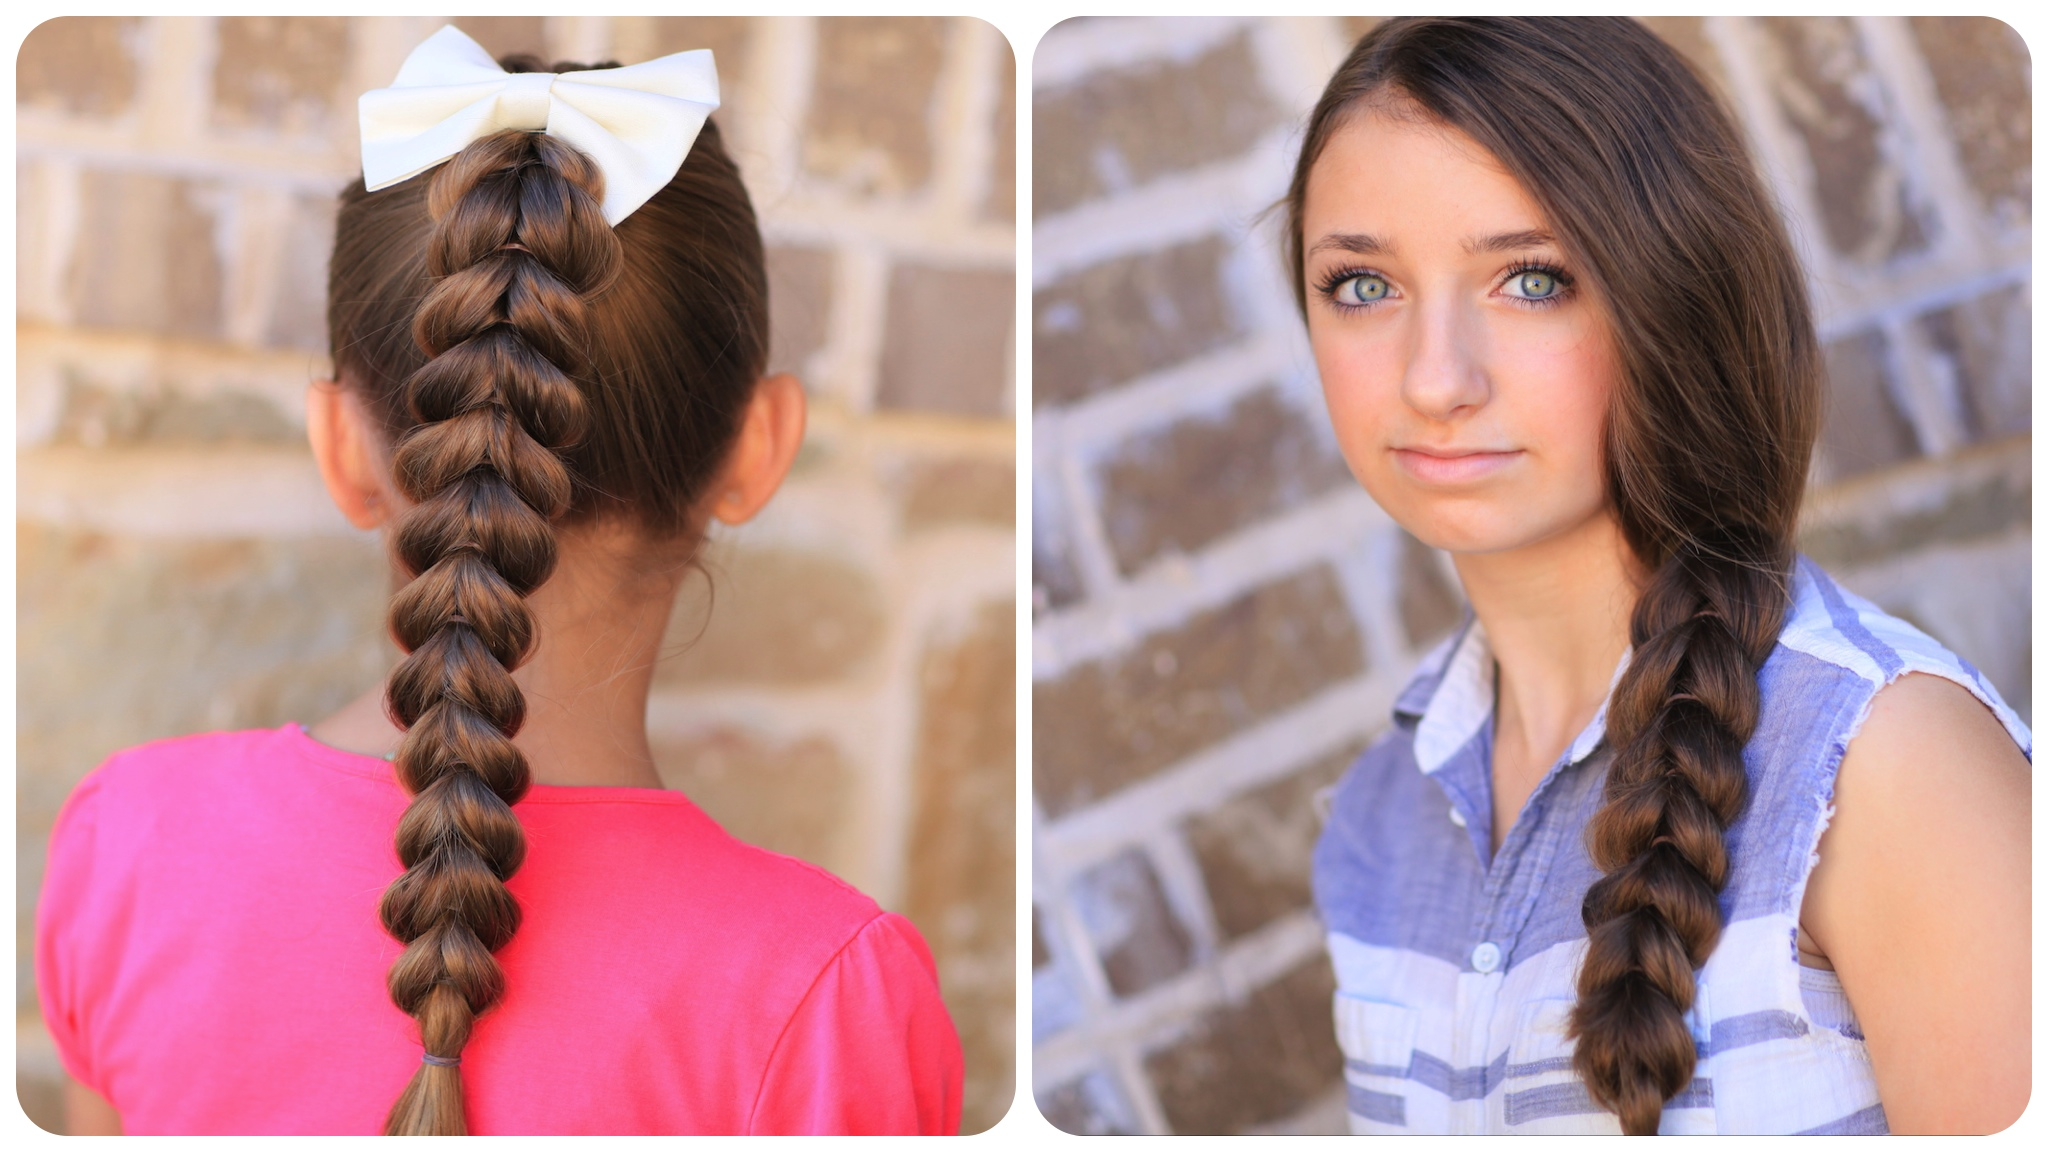 girls kids hairstyles wallpaper pictures of kids easy hairstyles for